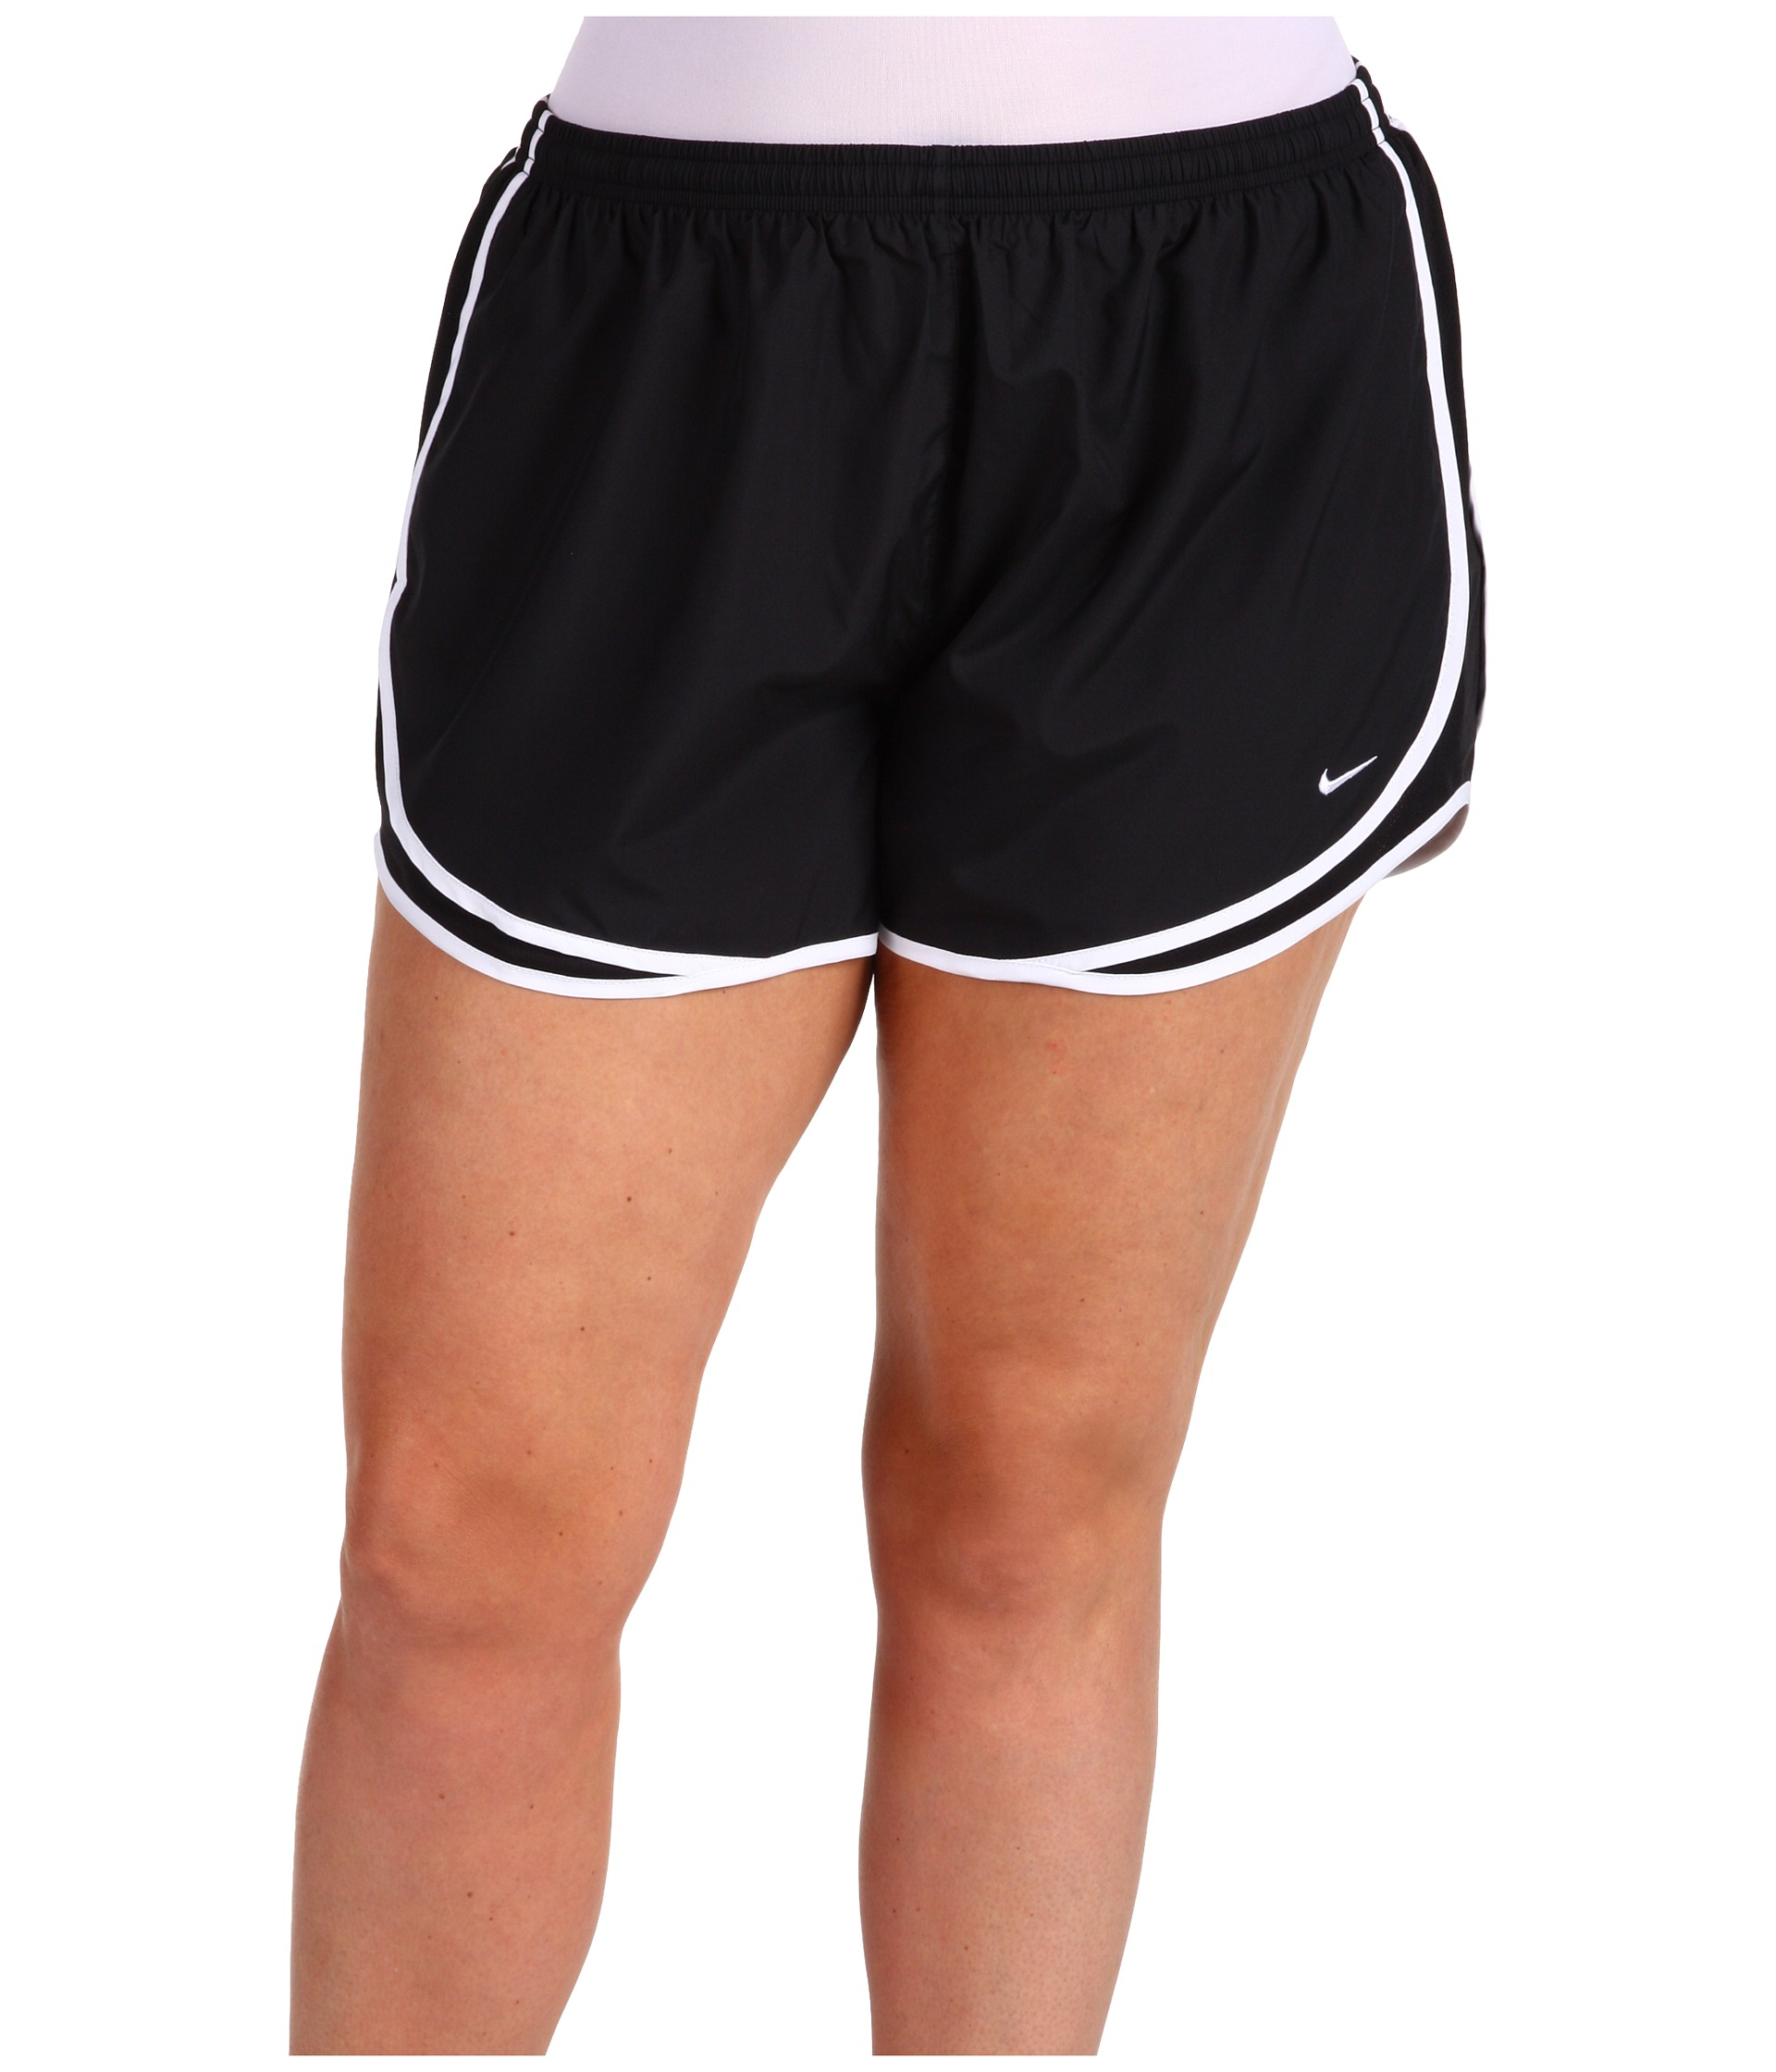 Nike womens running shorts with liner - Nike Womens Running Shorts With Liner 79